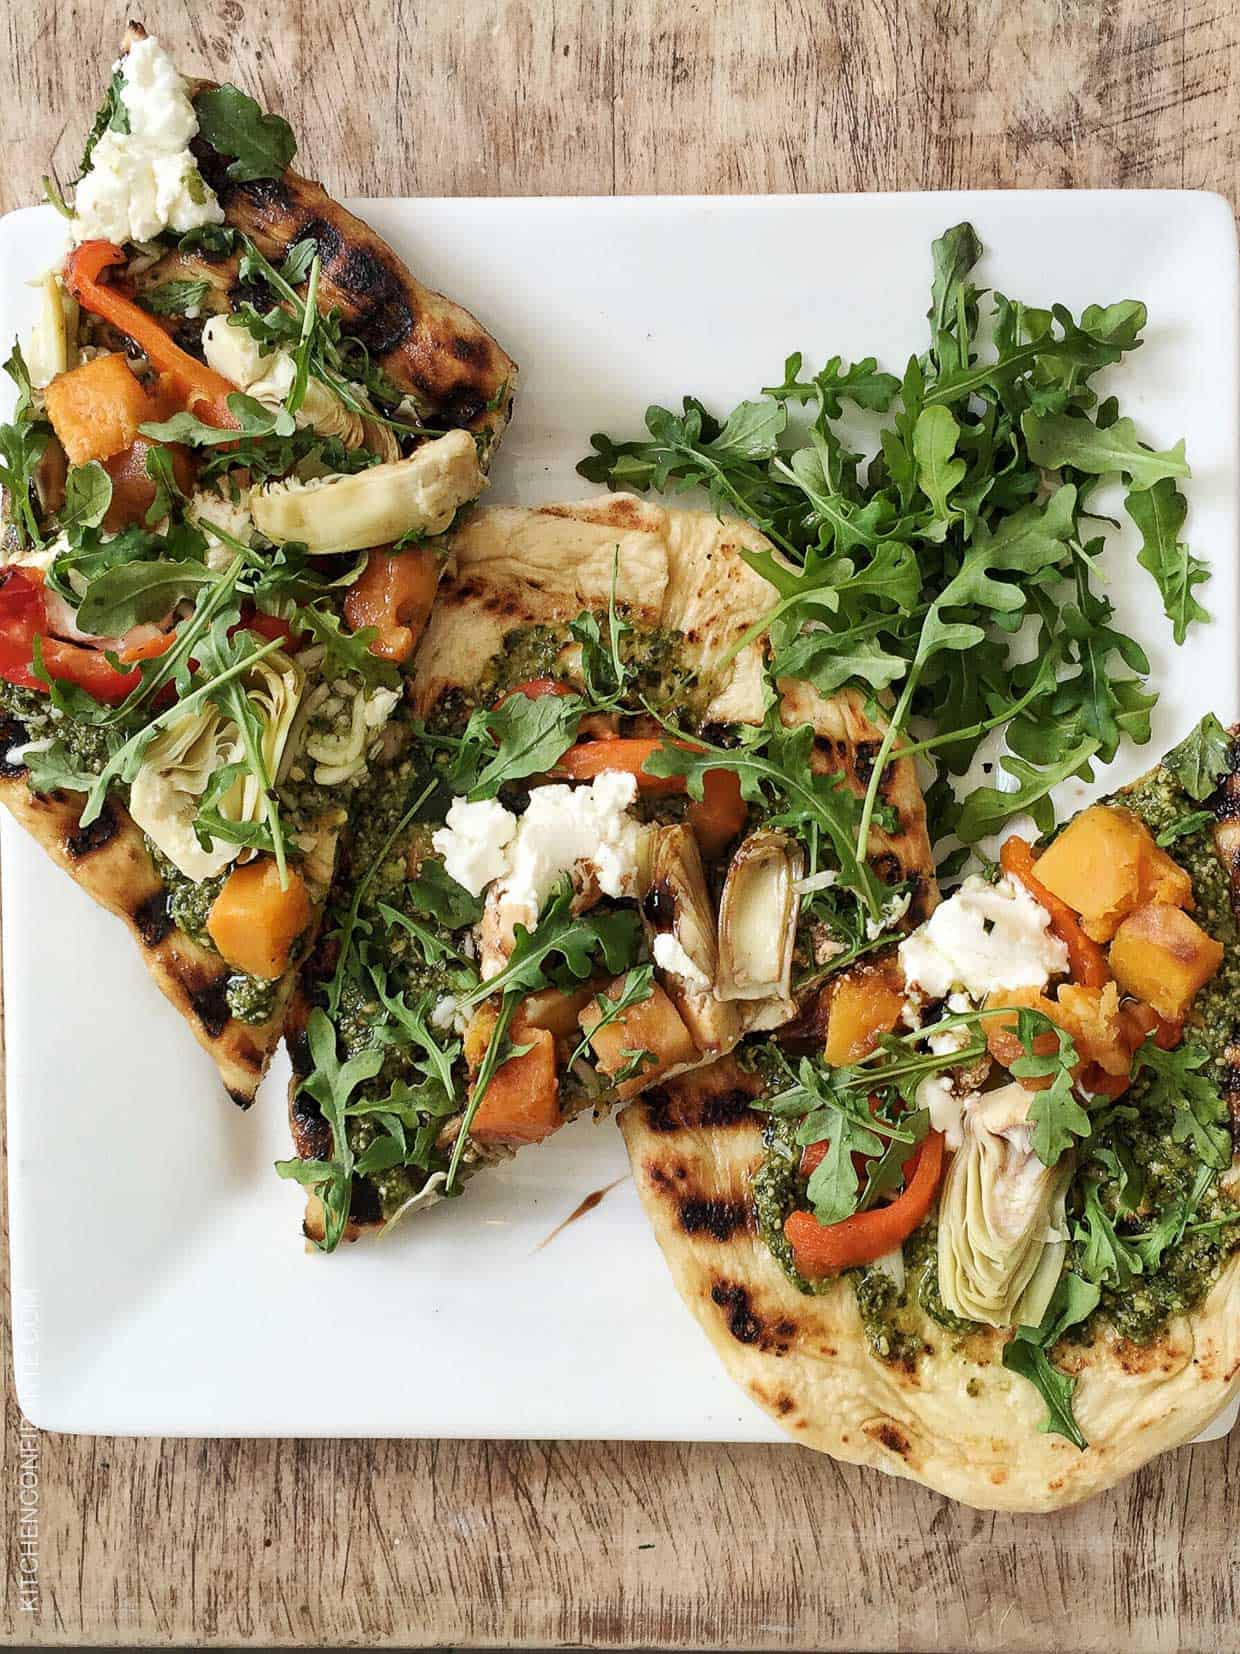 Slices of Skillet Pesto Flatbread with Goat Cheese, Artichokes and Roasted Butternut Squash on a white plate.